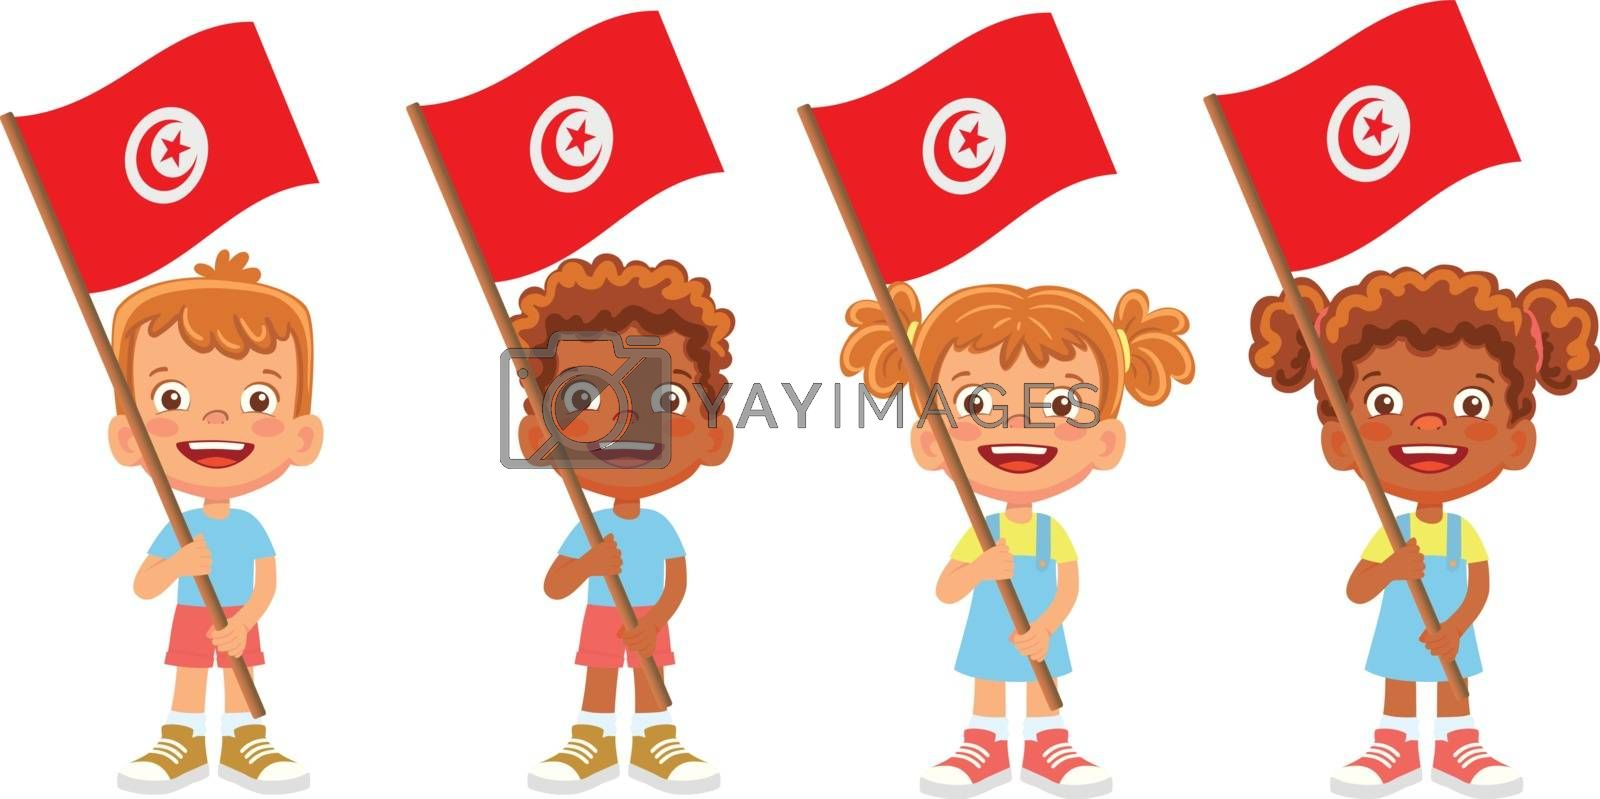 Tunisia flag in hand set by Visual-Content